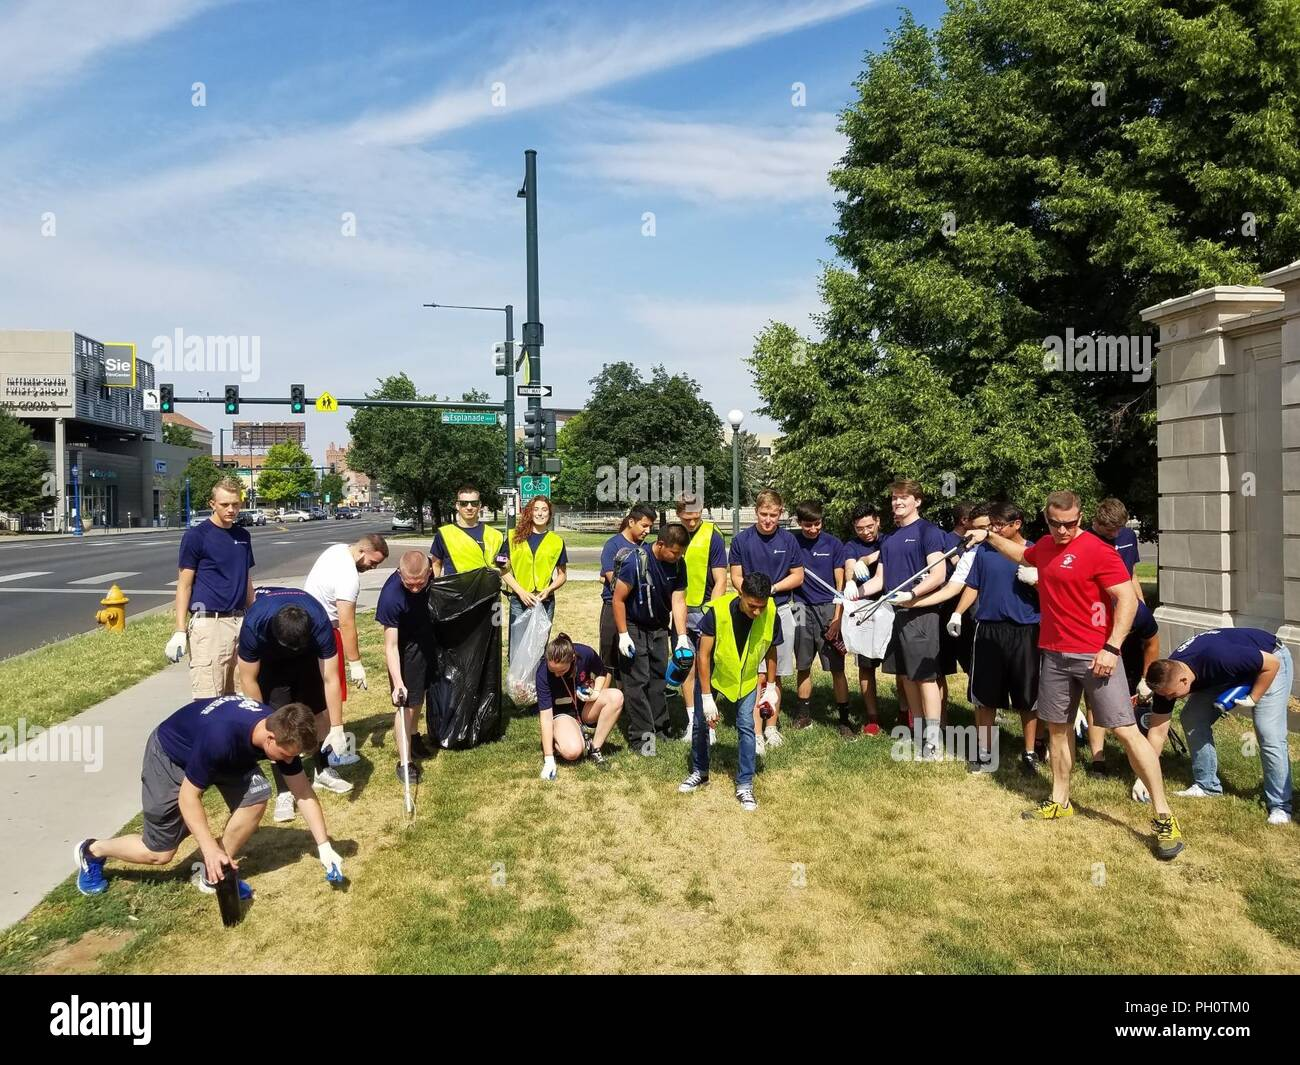 Local Marines and future Marines with Recruiting Sub-Stations Metro West and Metro North pick up trash and debris during an Adopt a Spot cleanup event June 16, 2018. The local Marine Corps recruiting sub-stations have agreed to coordinate monthly cleanups along a section of Colfax Street in Denver, Colorado. - Stock Image